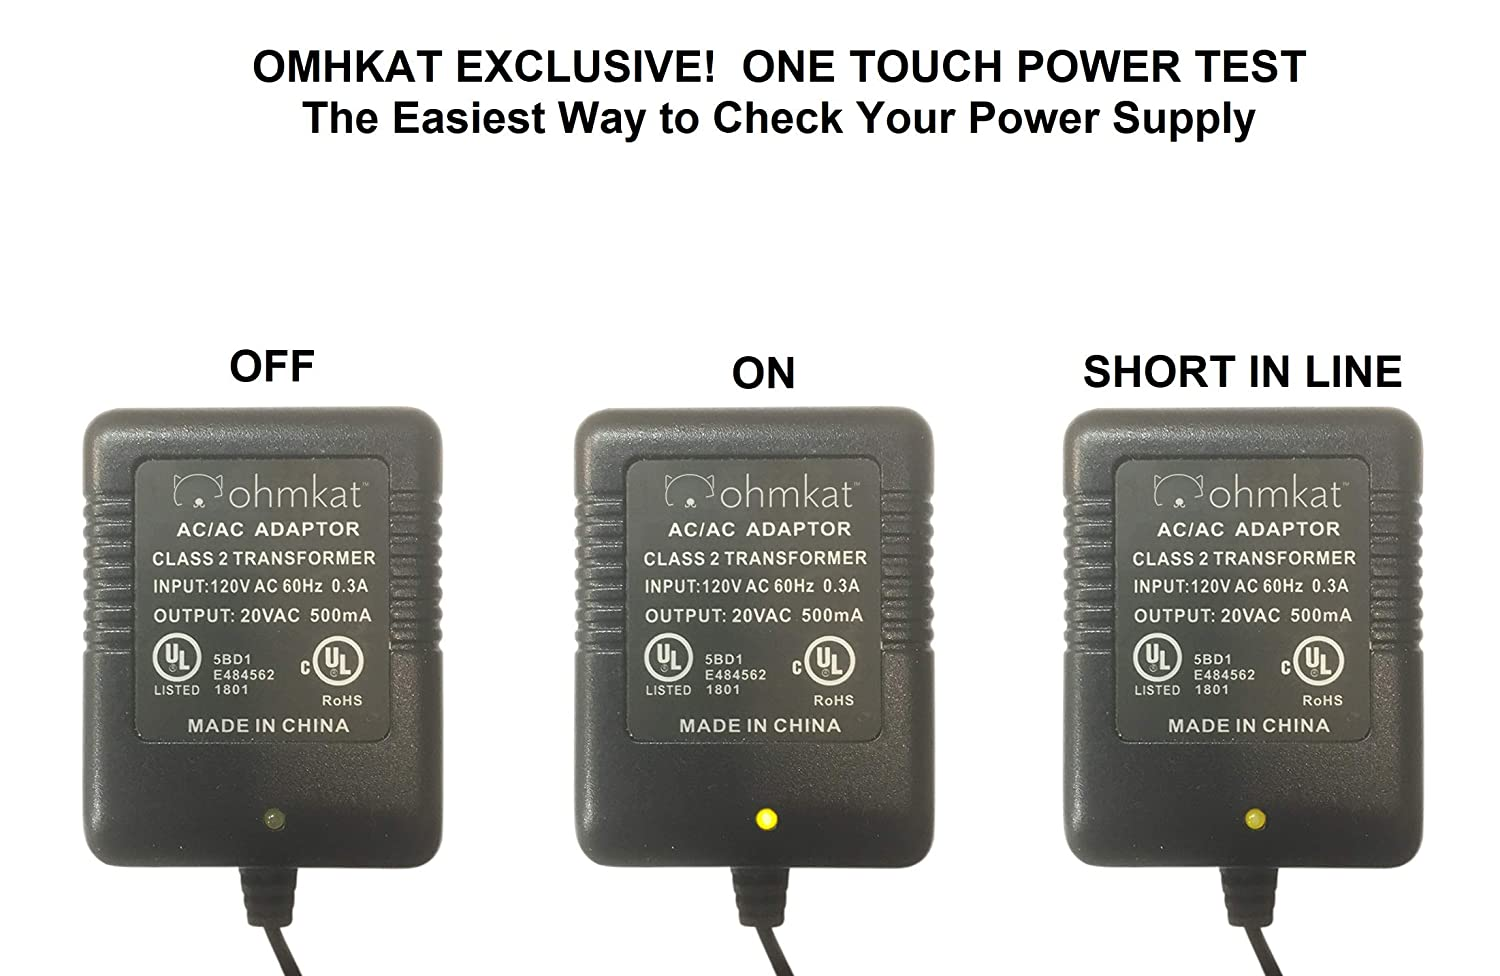 Ohmkat Video Doorbell Power Supply Compatible With Nest Hello No Lowvoltage Screws Of Your Existing Click Here For A Diagram Wiring Required Transformer Adapter Kit All In One Black